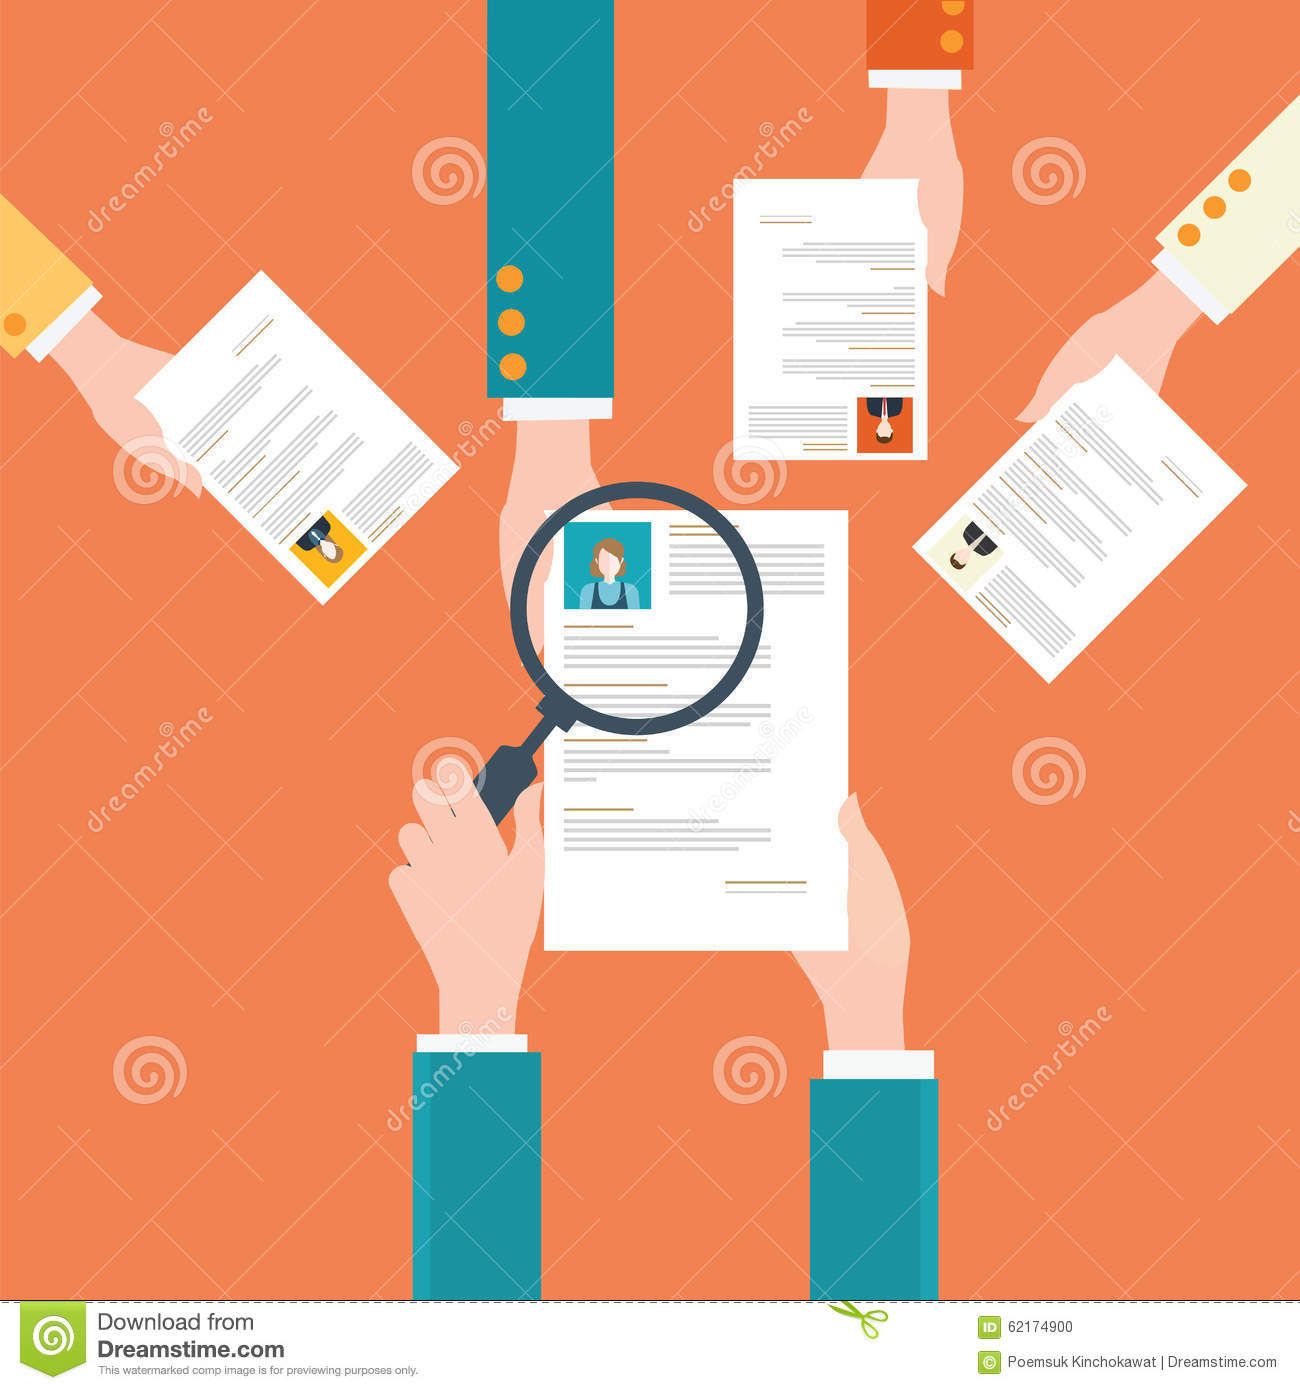 human resources design  stock photo